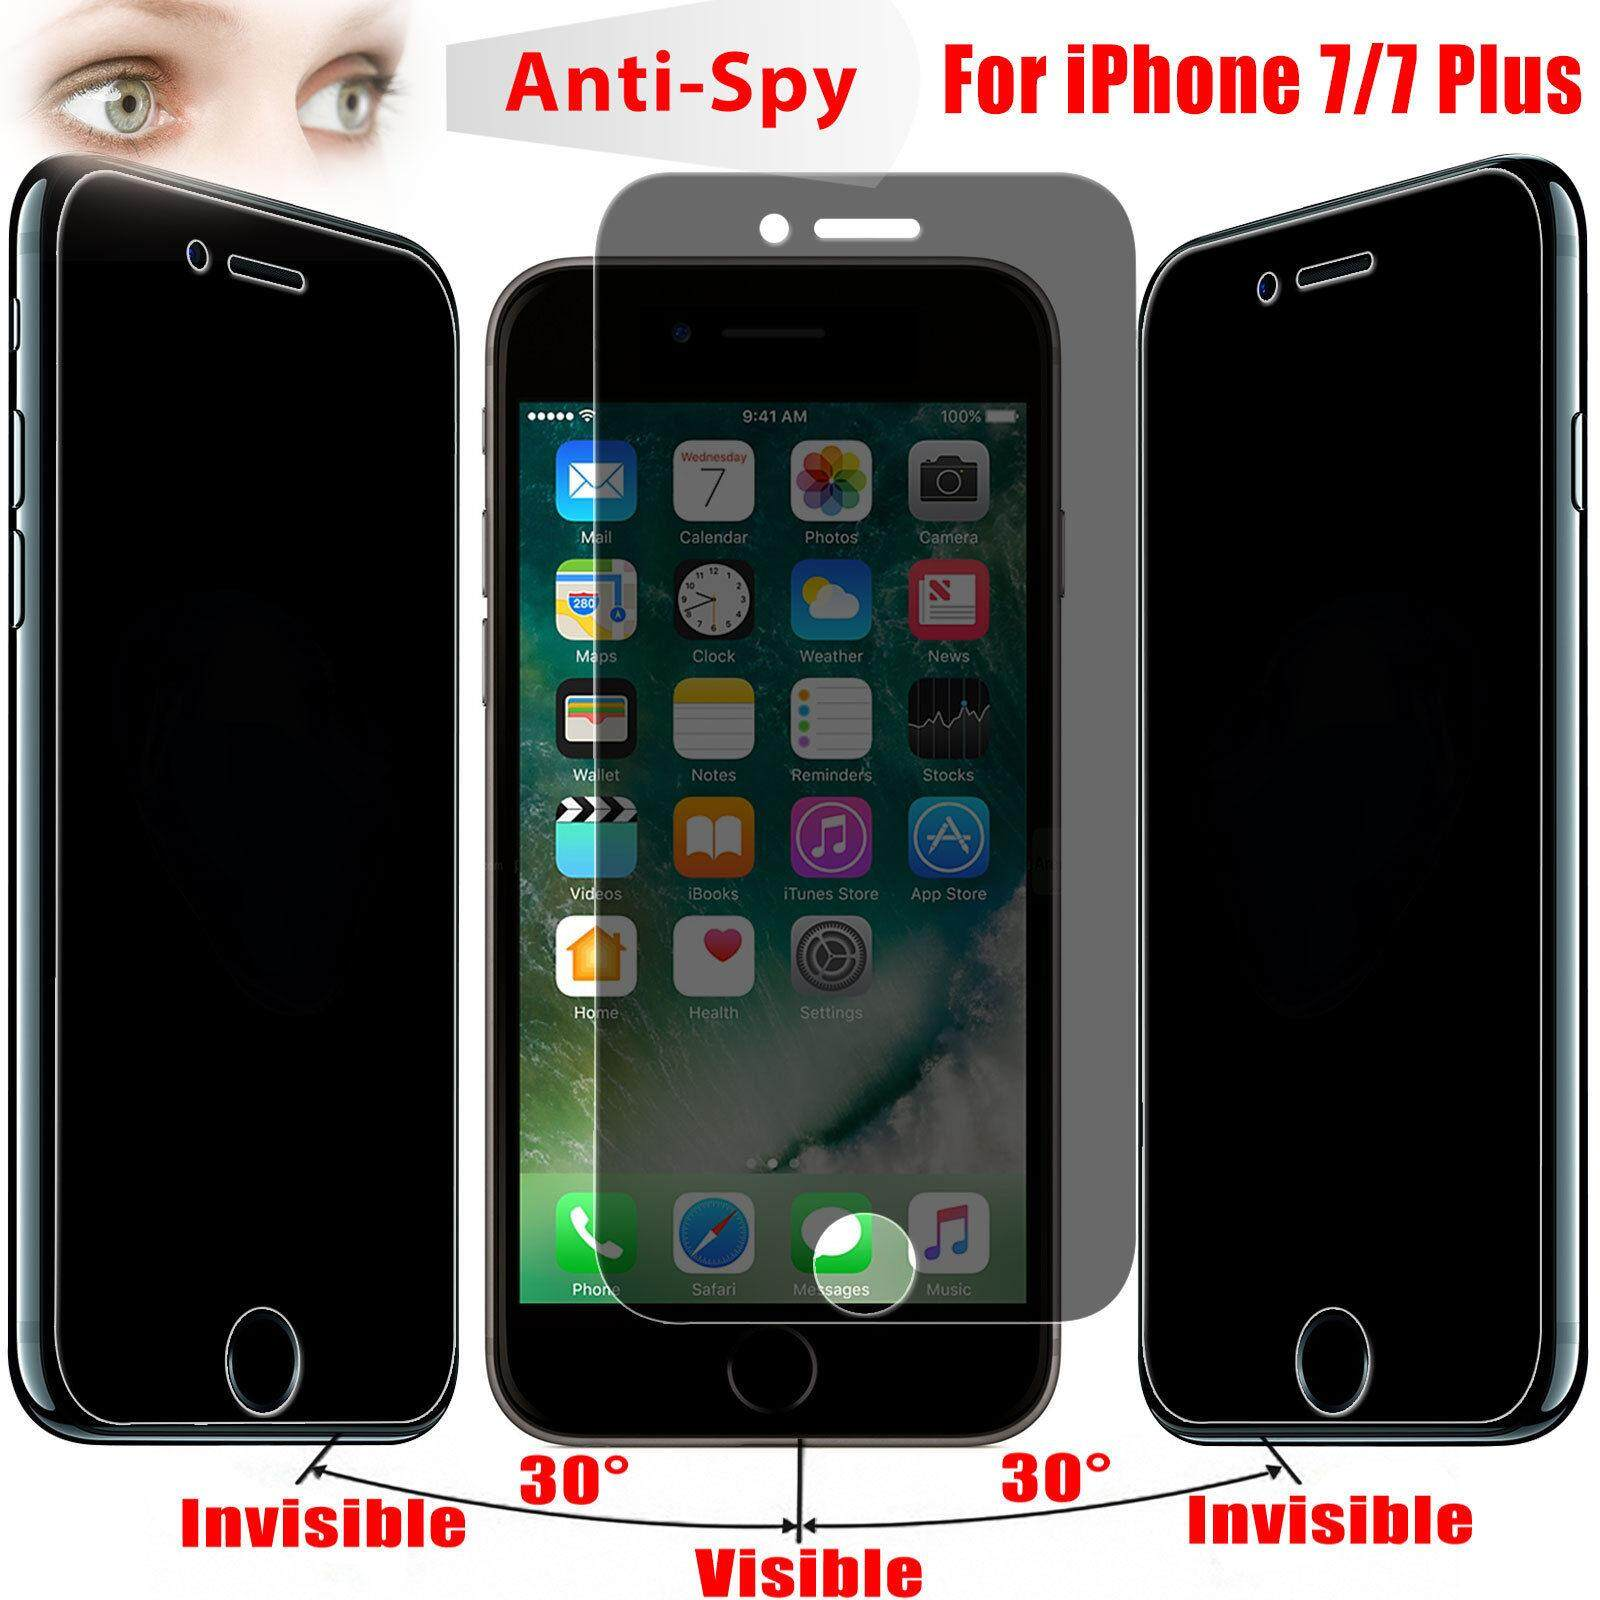 Fitur Uneed Hybrid Glass 3d Screen Protector For Iphone 7 Plus Frame 6p Hitam Privacy Tempered